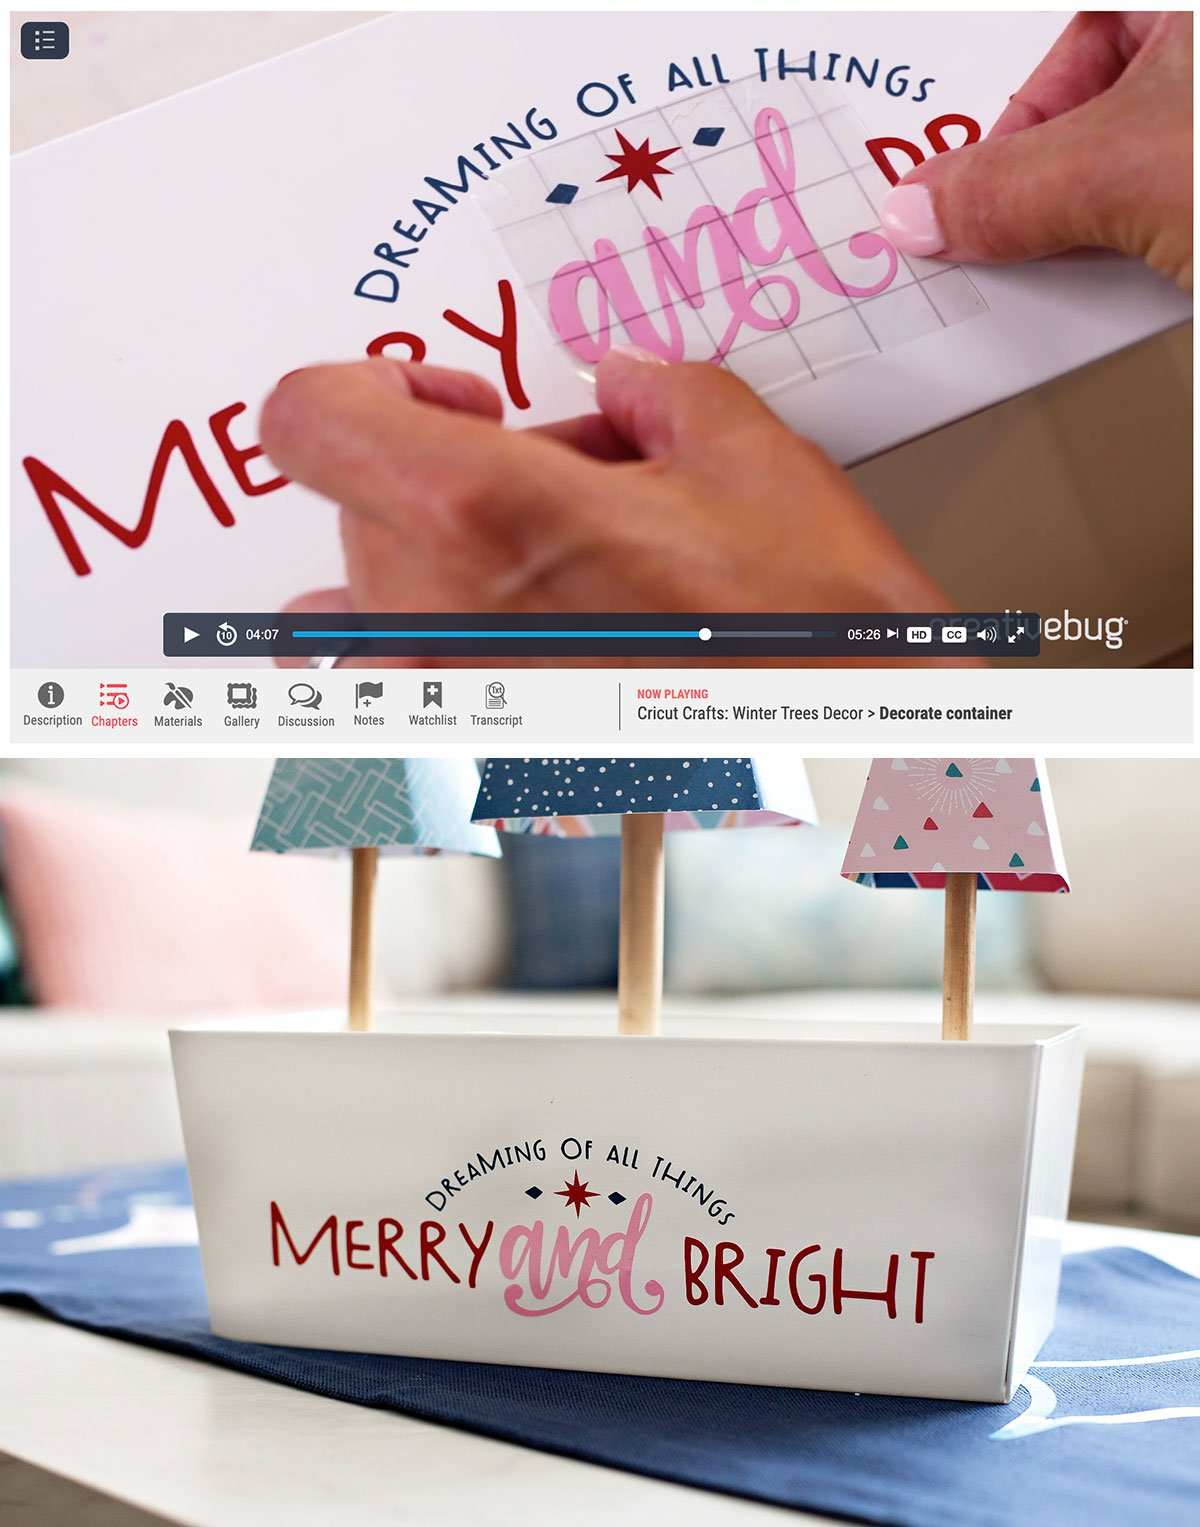 Merry and Bright holiday design